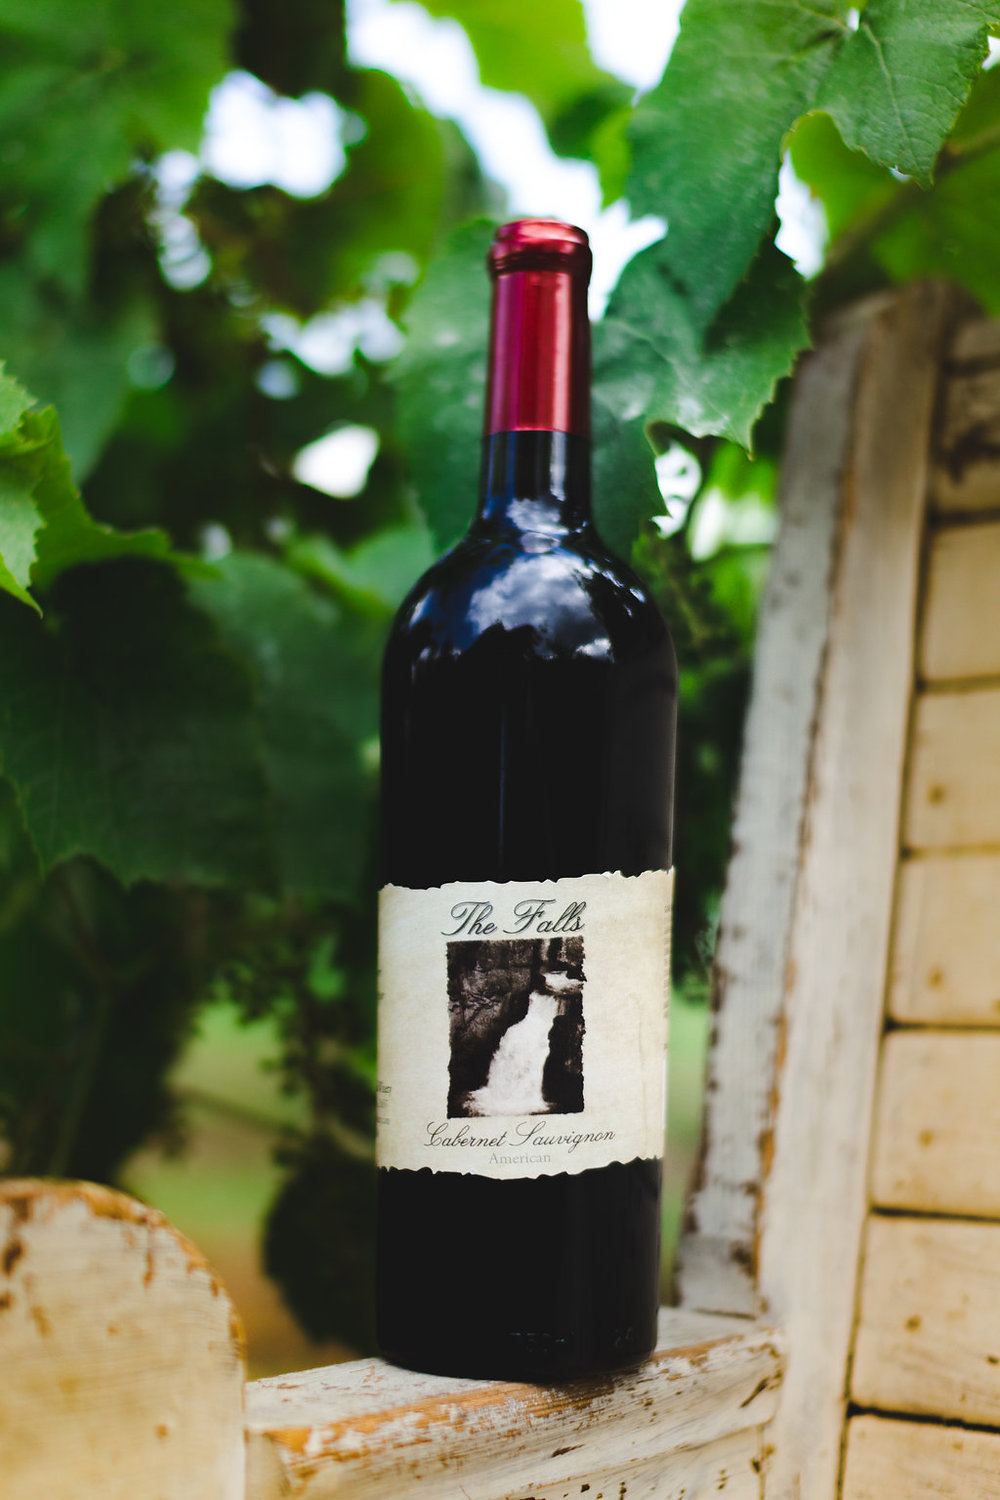 Cabernet Sauvignon - Three years in French Oak barrels brings out the best in this high-quality Cab. Experience soft tannins and a smooth, smoky finish.